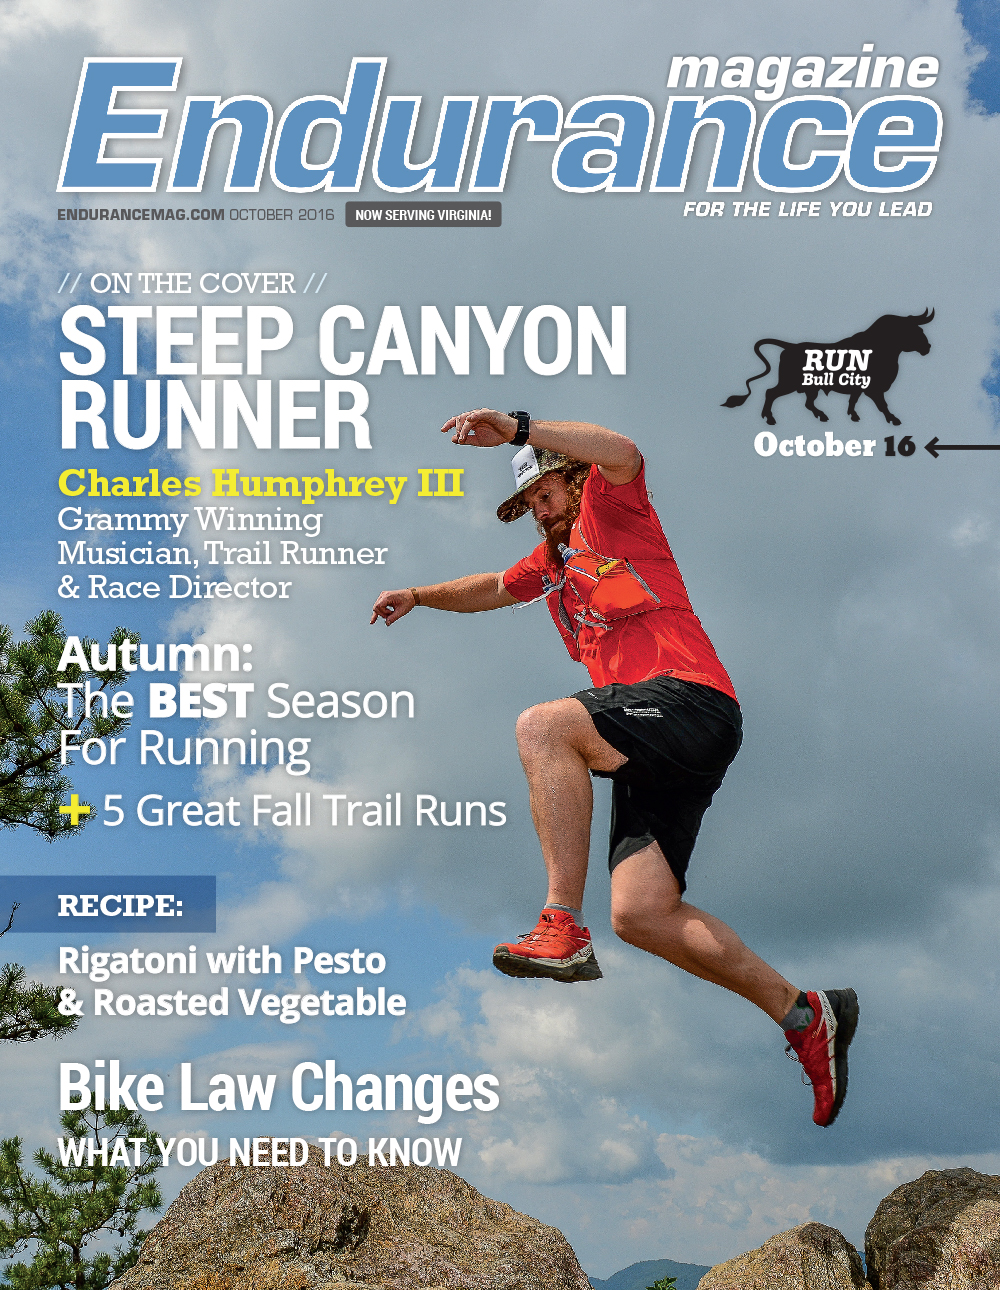 Endurance Triangle OCT 2016 Cover